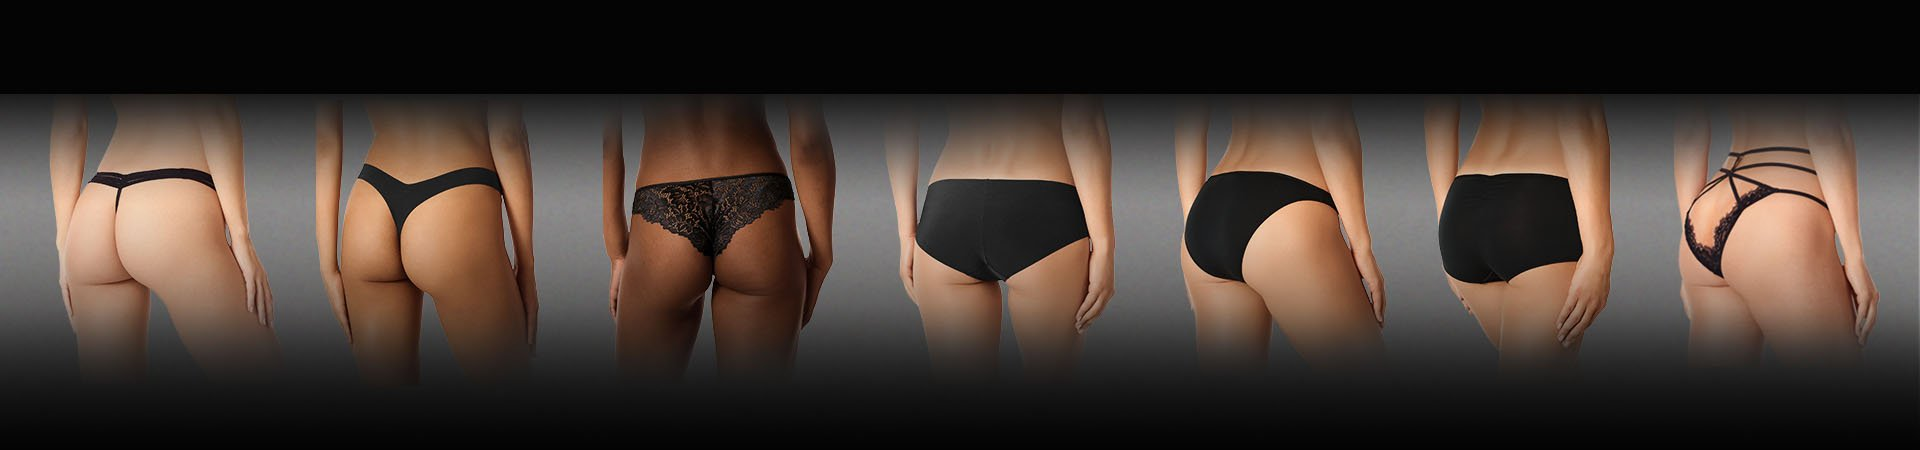 La Senza Remix Panties Line up. G-String, Thong, cheeky, Hipster, Bikini, Boyshort, & Boudoir.